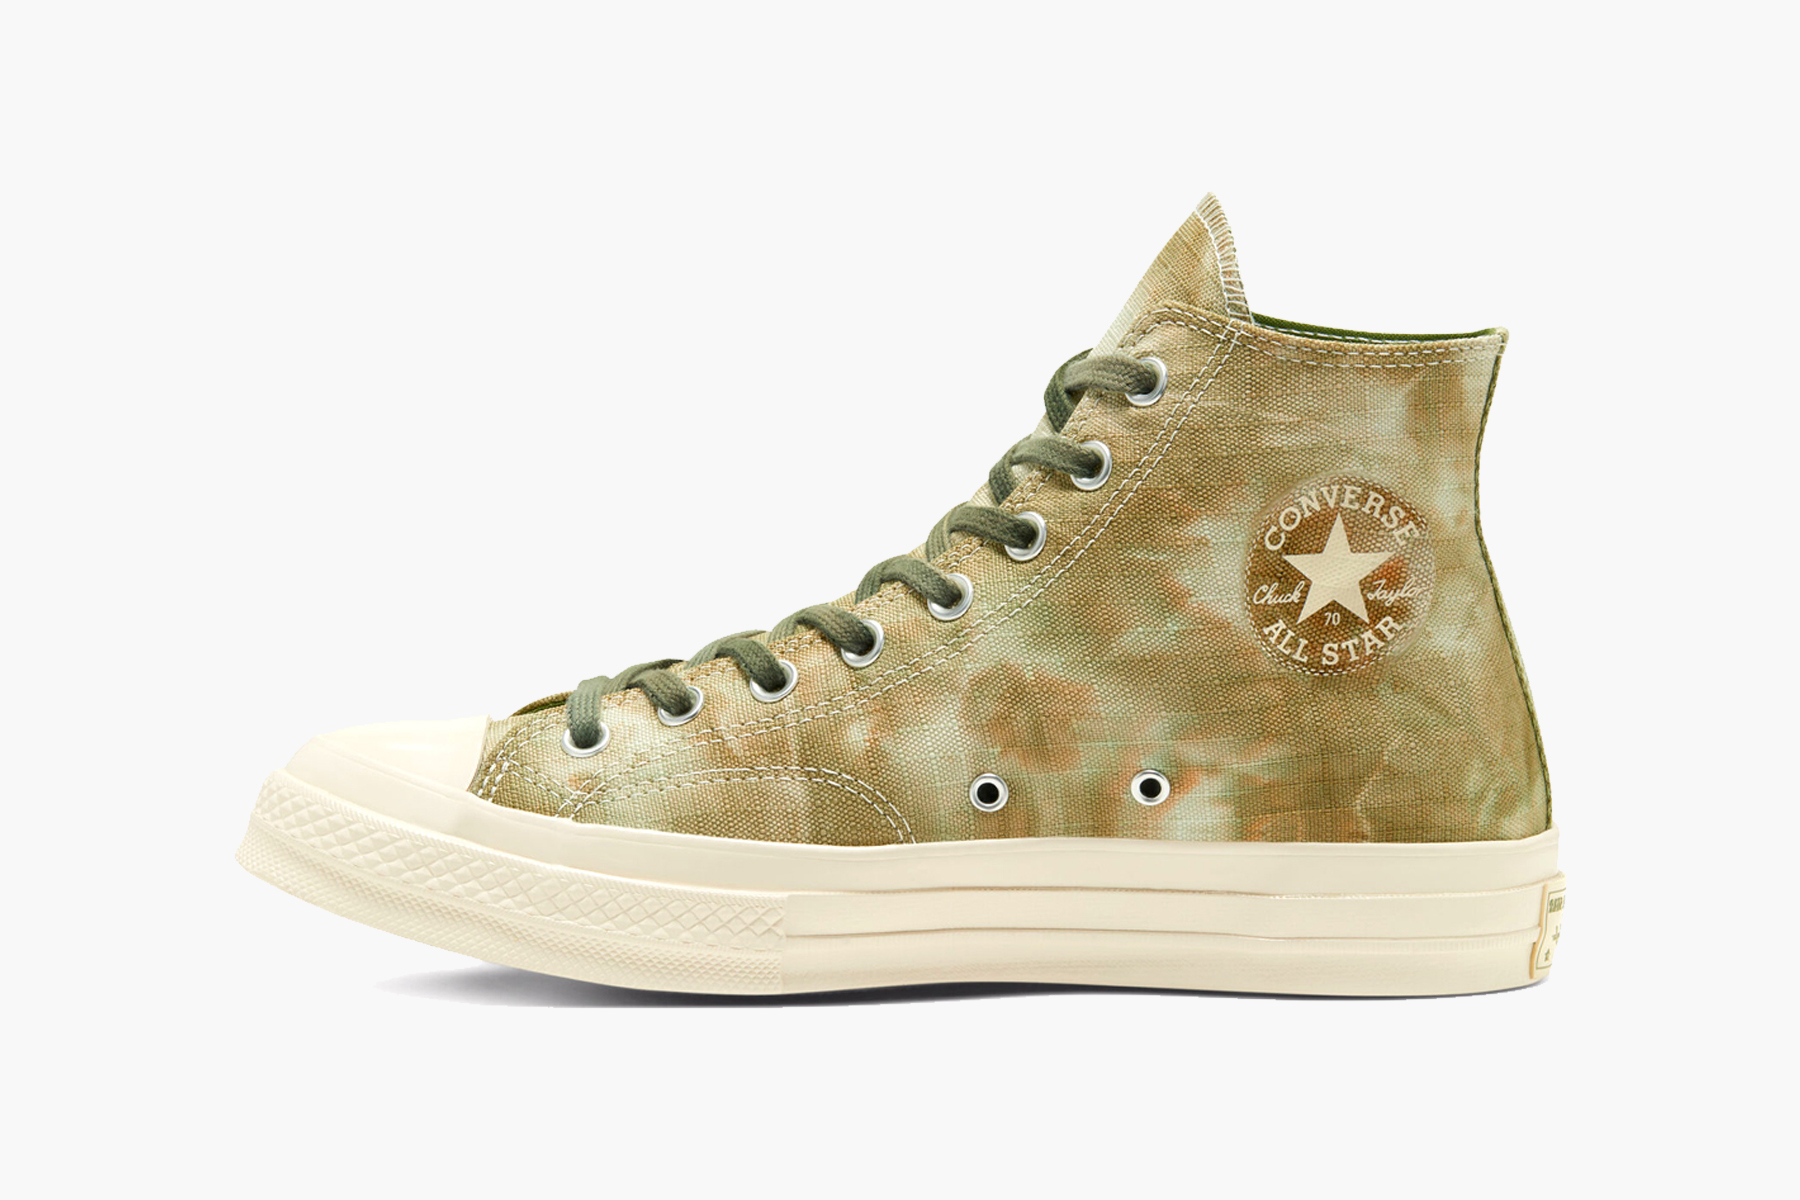 Converse Twisted Vacation Chuck 70